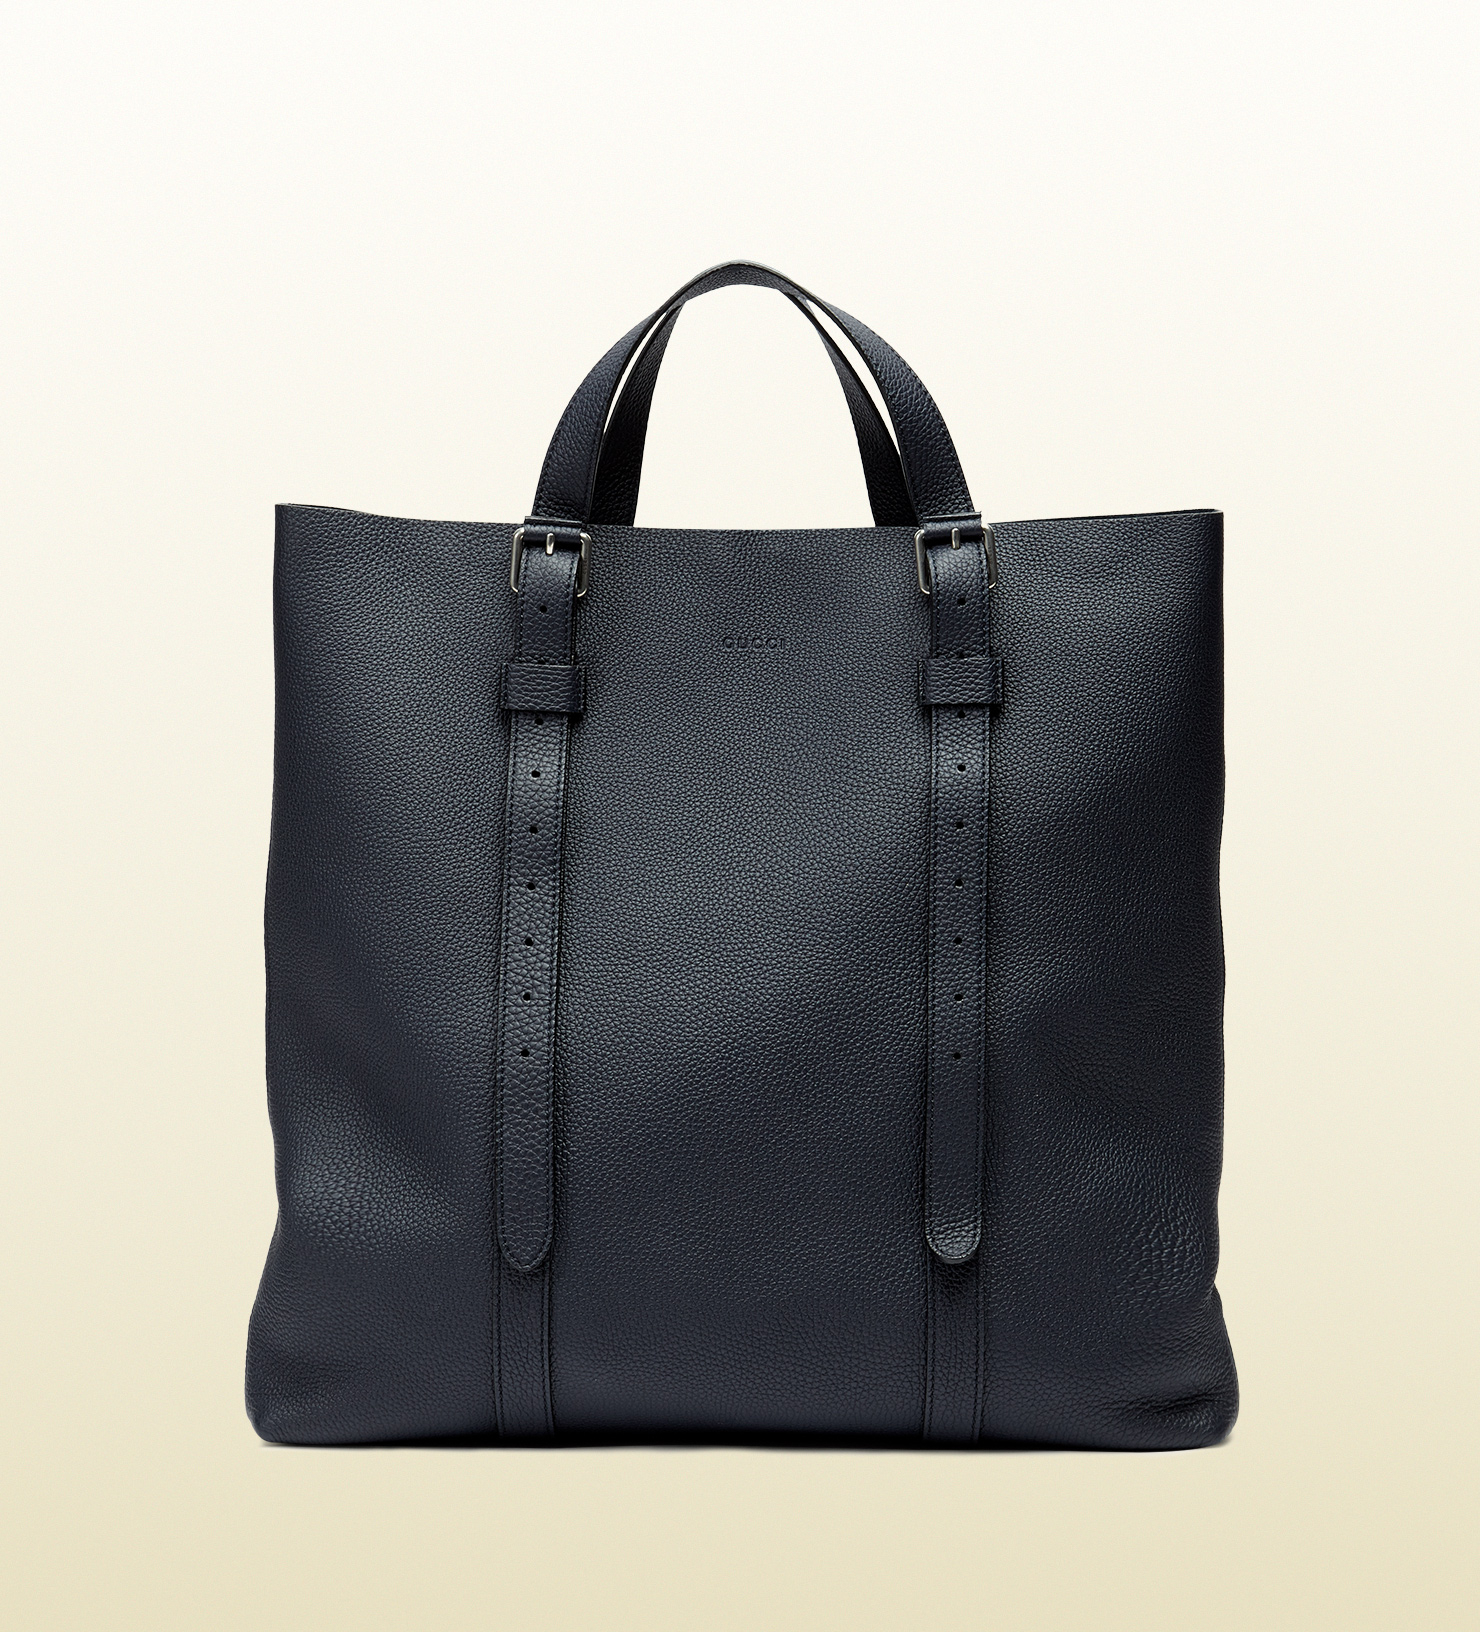 600ce37d44f4 Gucci Blue Leather Tote Bag | Stanford Center for Opportunity Policy ...